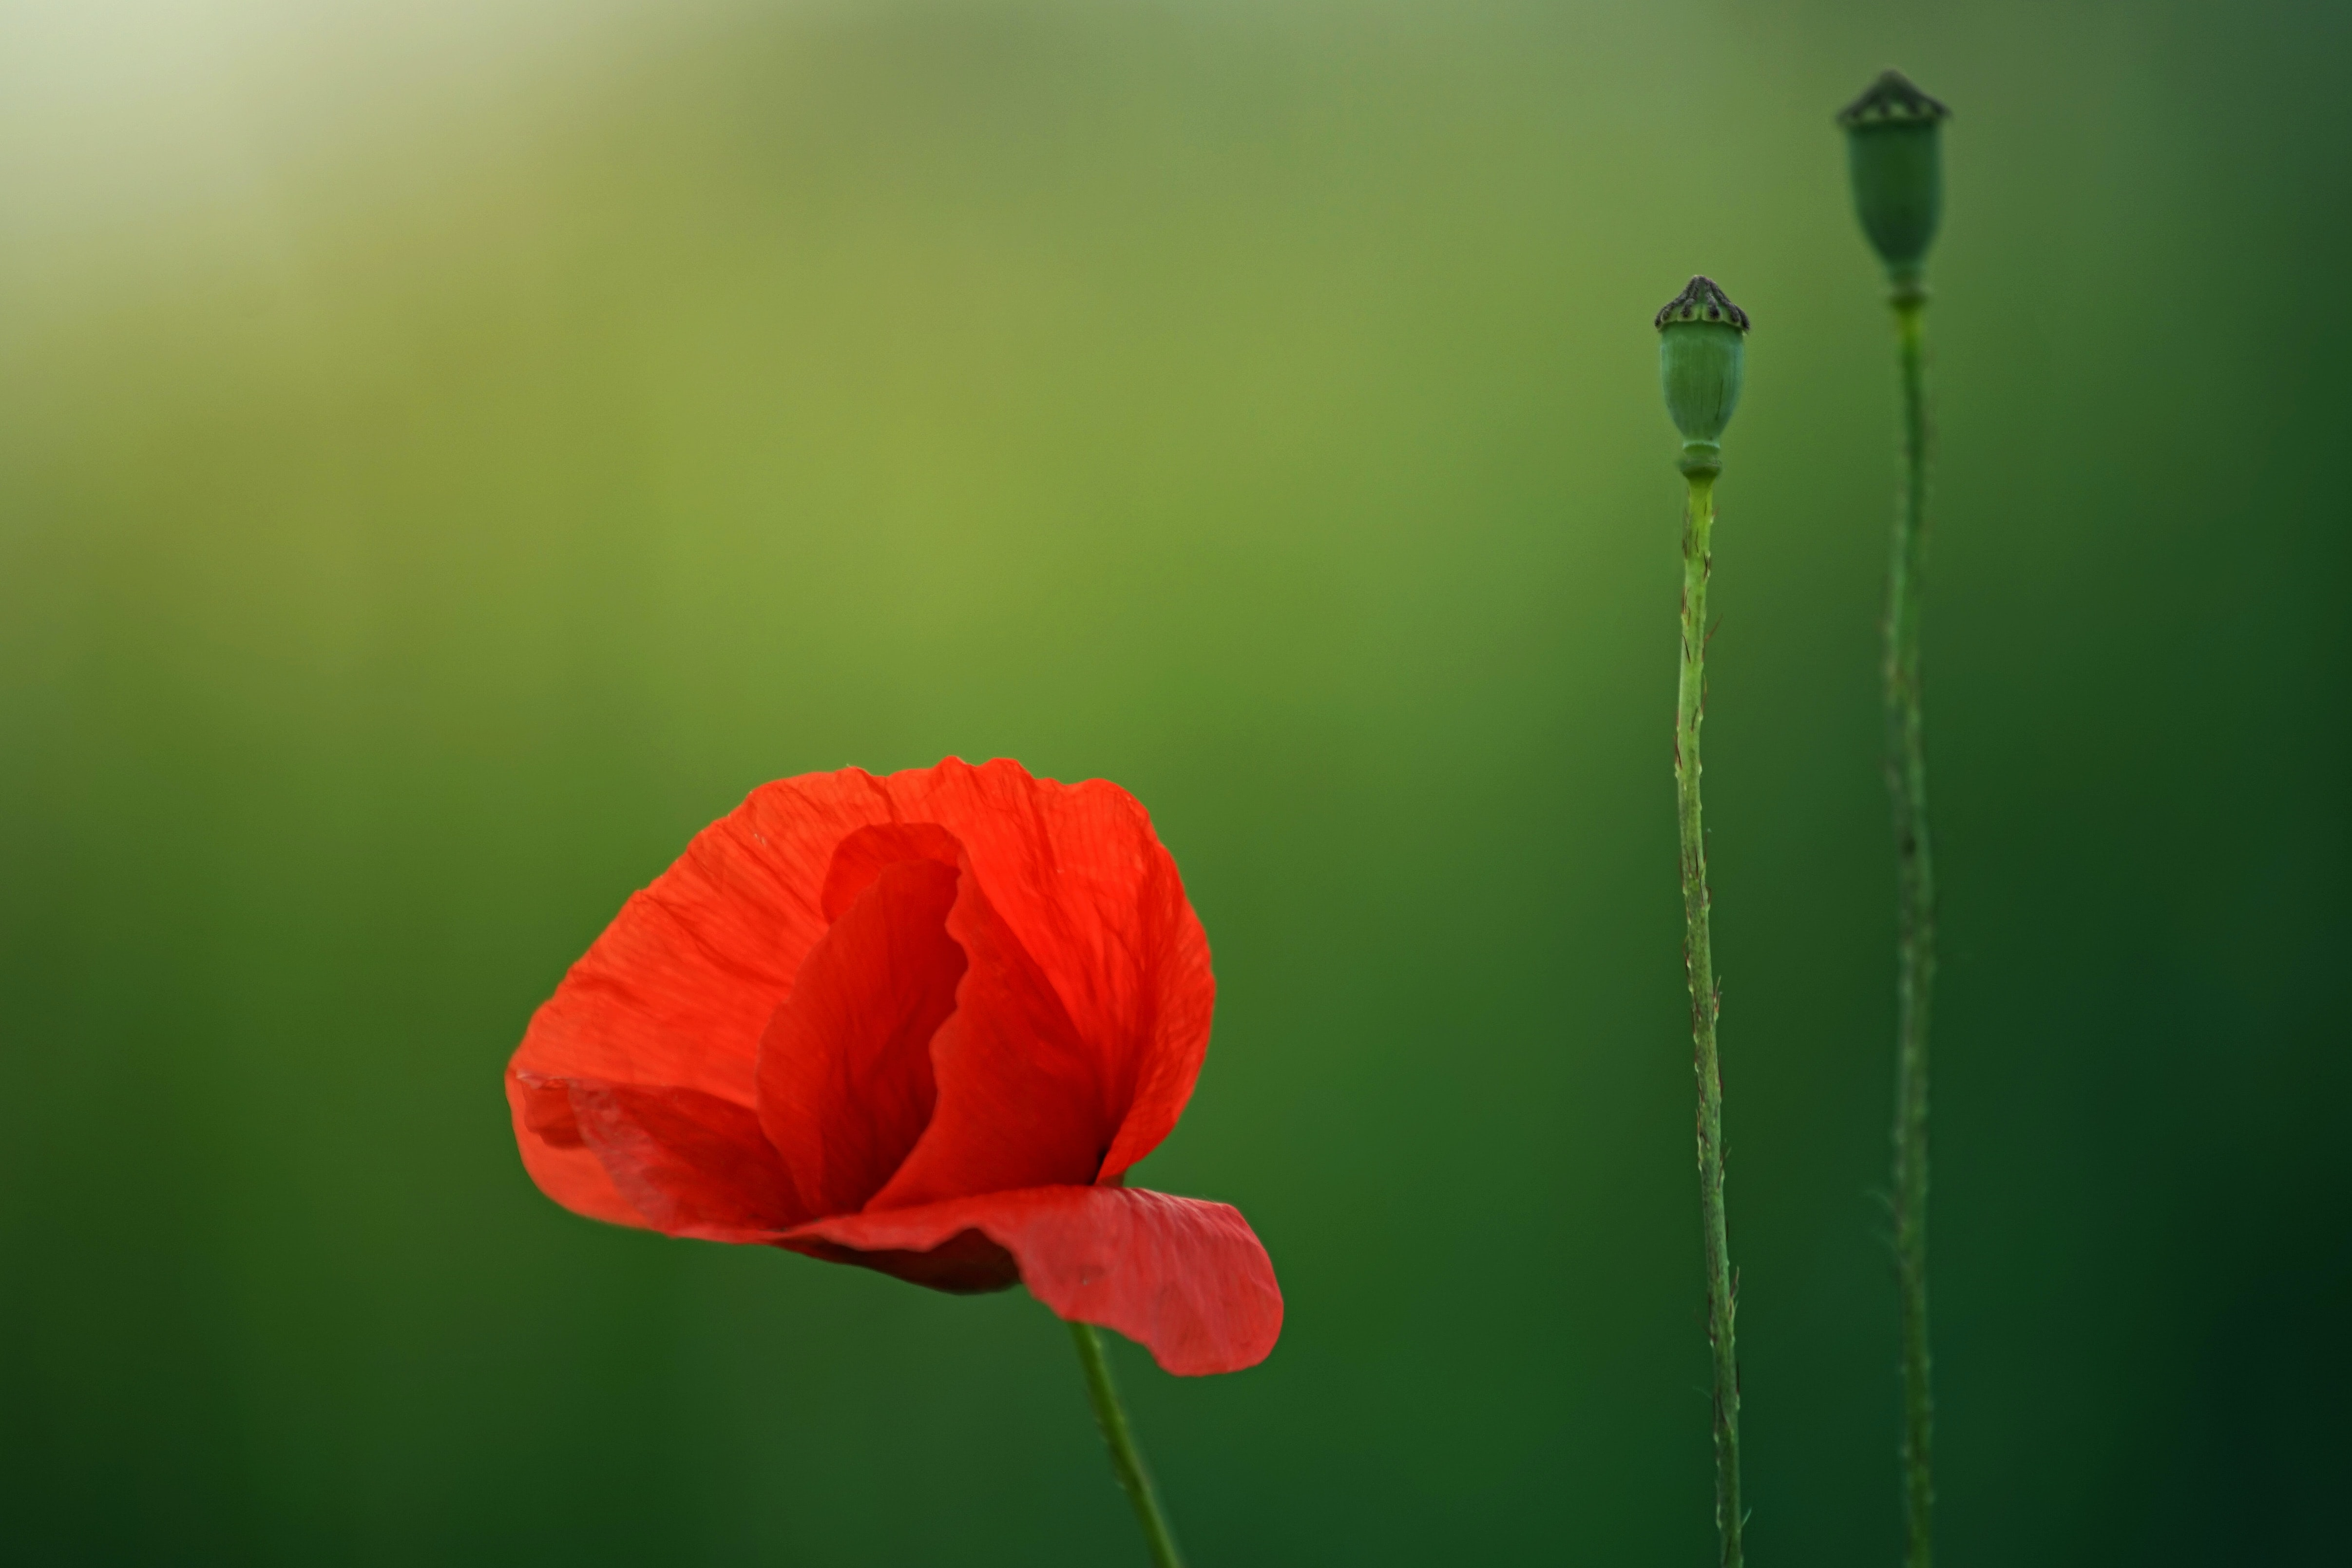 Close-up of a red poppy next to two seed heads